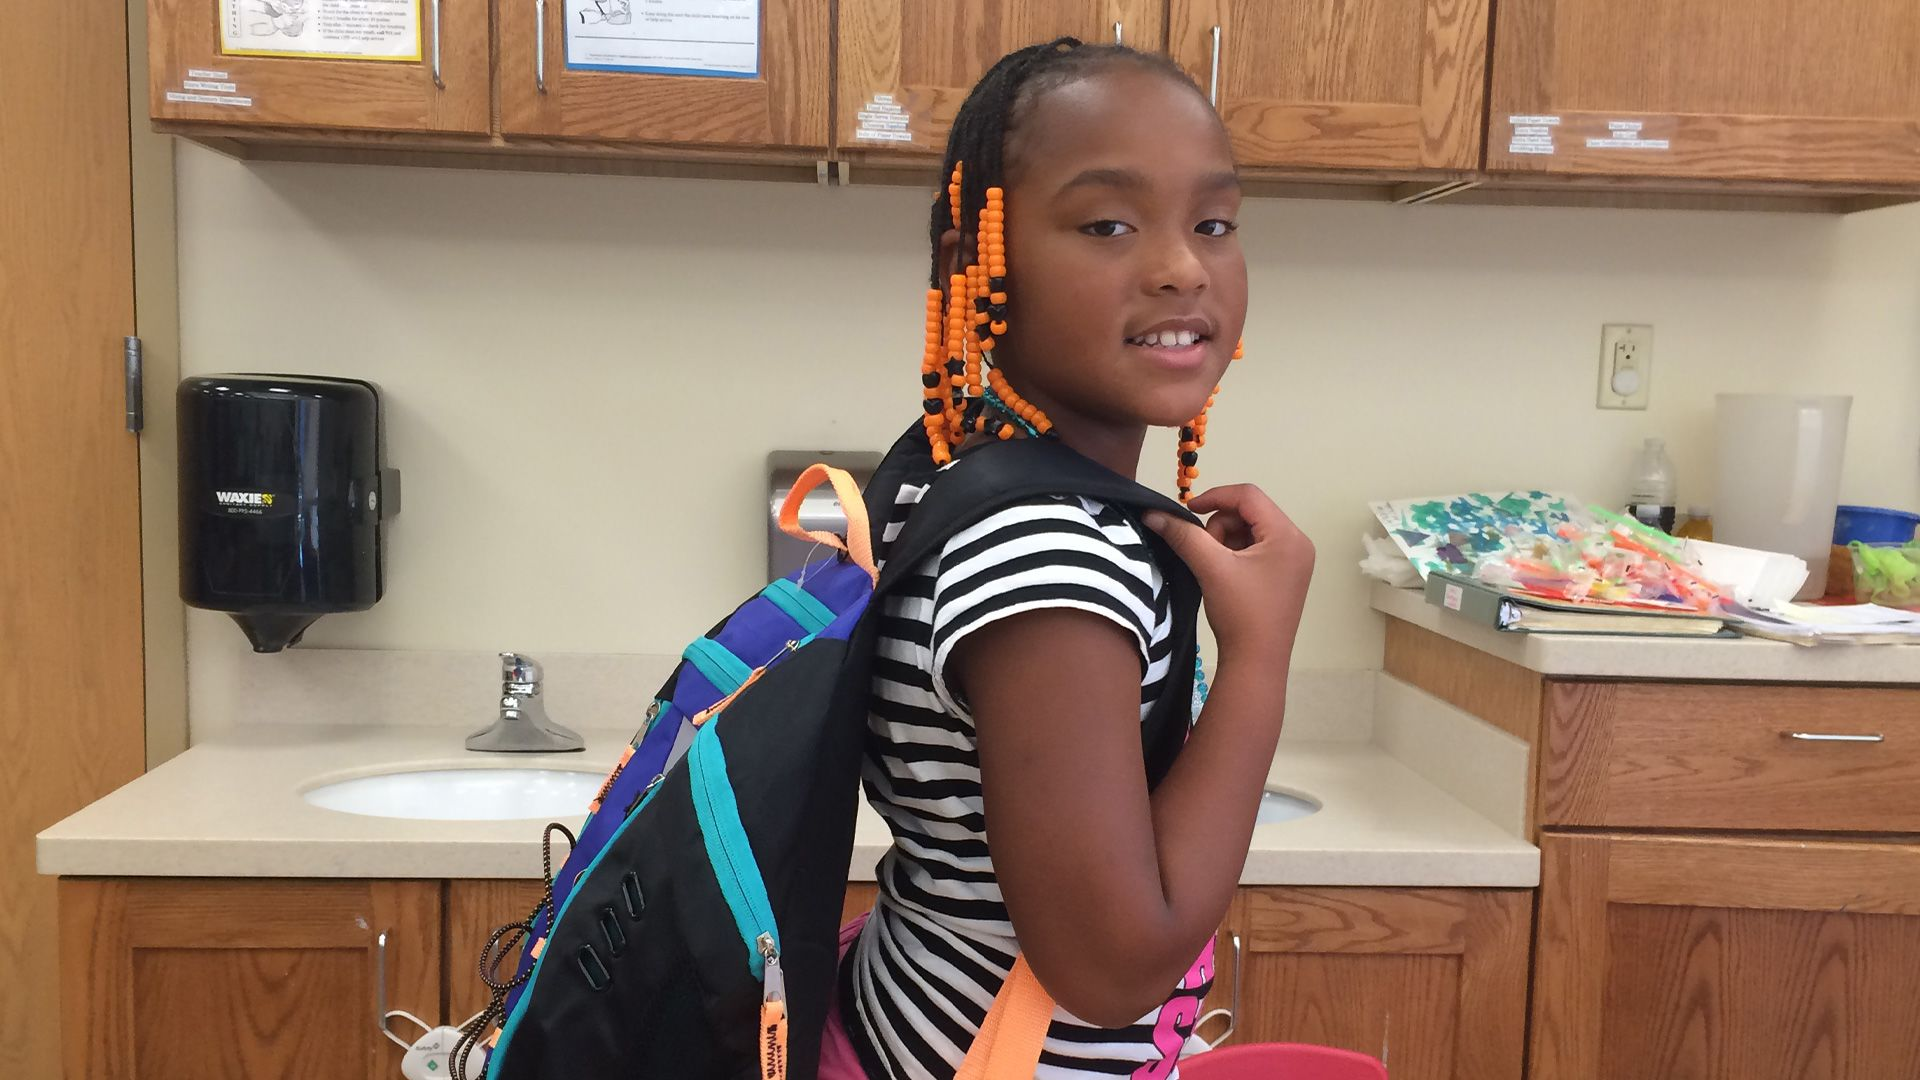 Purchase and send school supplies directly to Volunteers of America